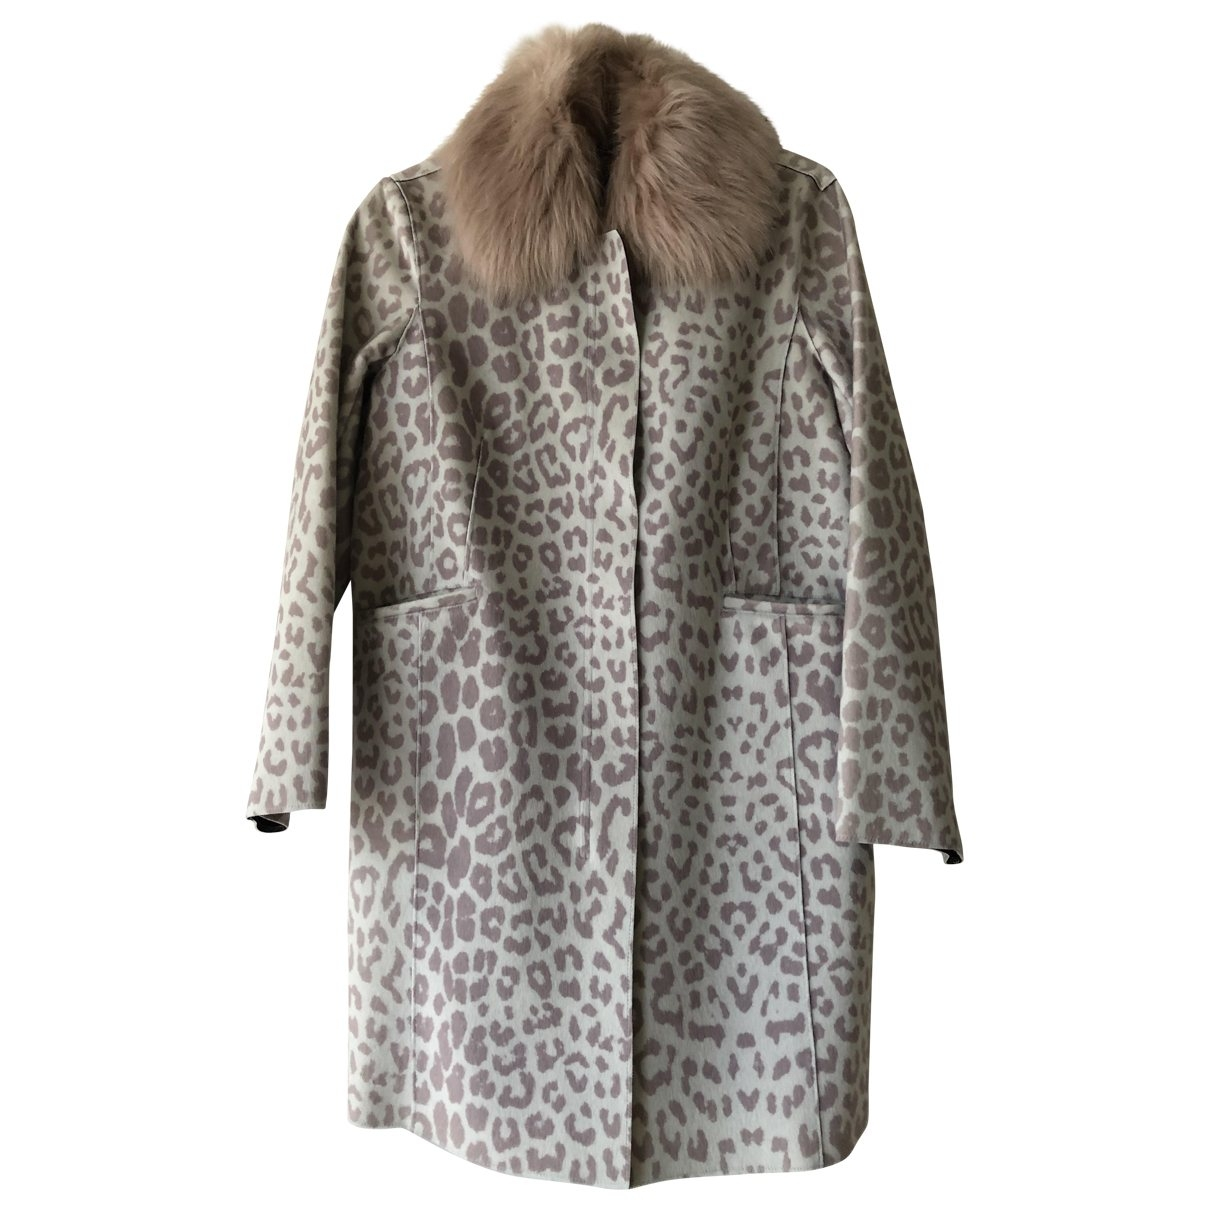 Max & Co \N Multicolour coat for Women 40 IT